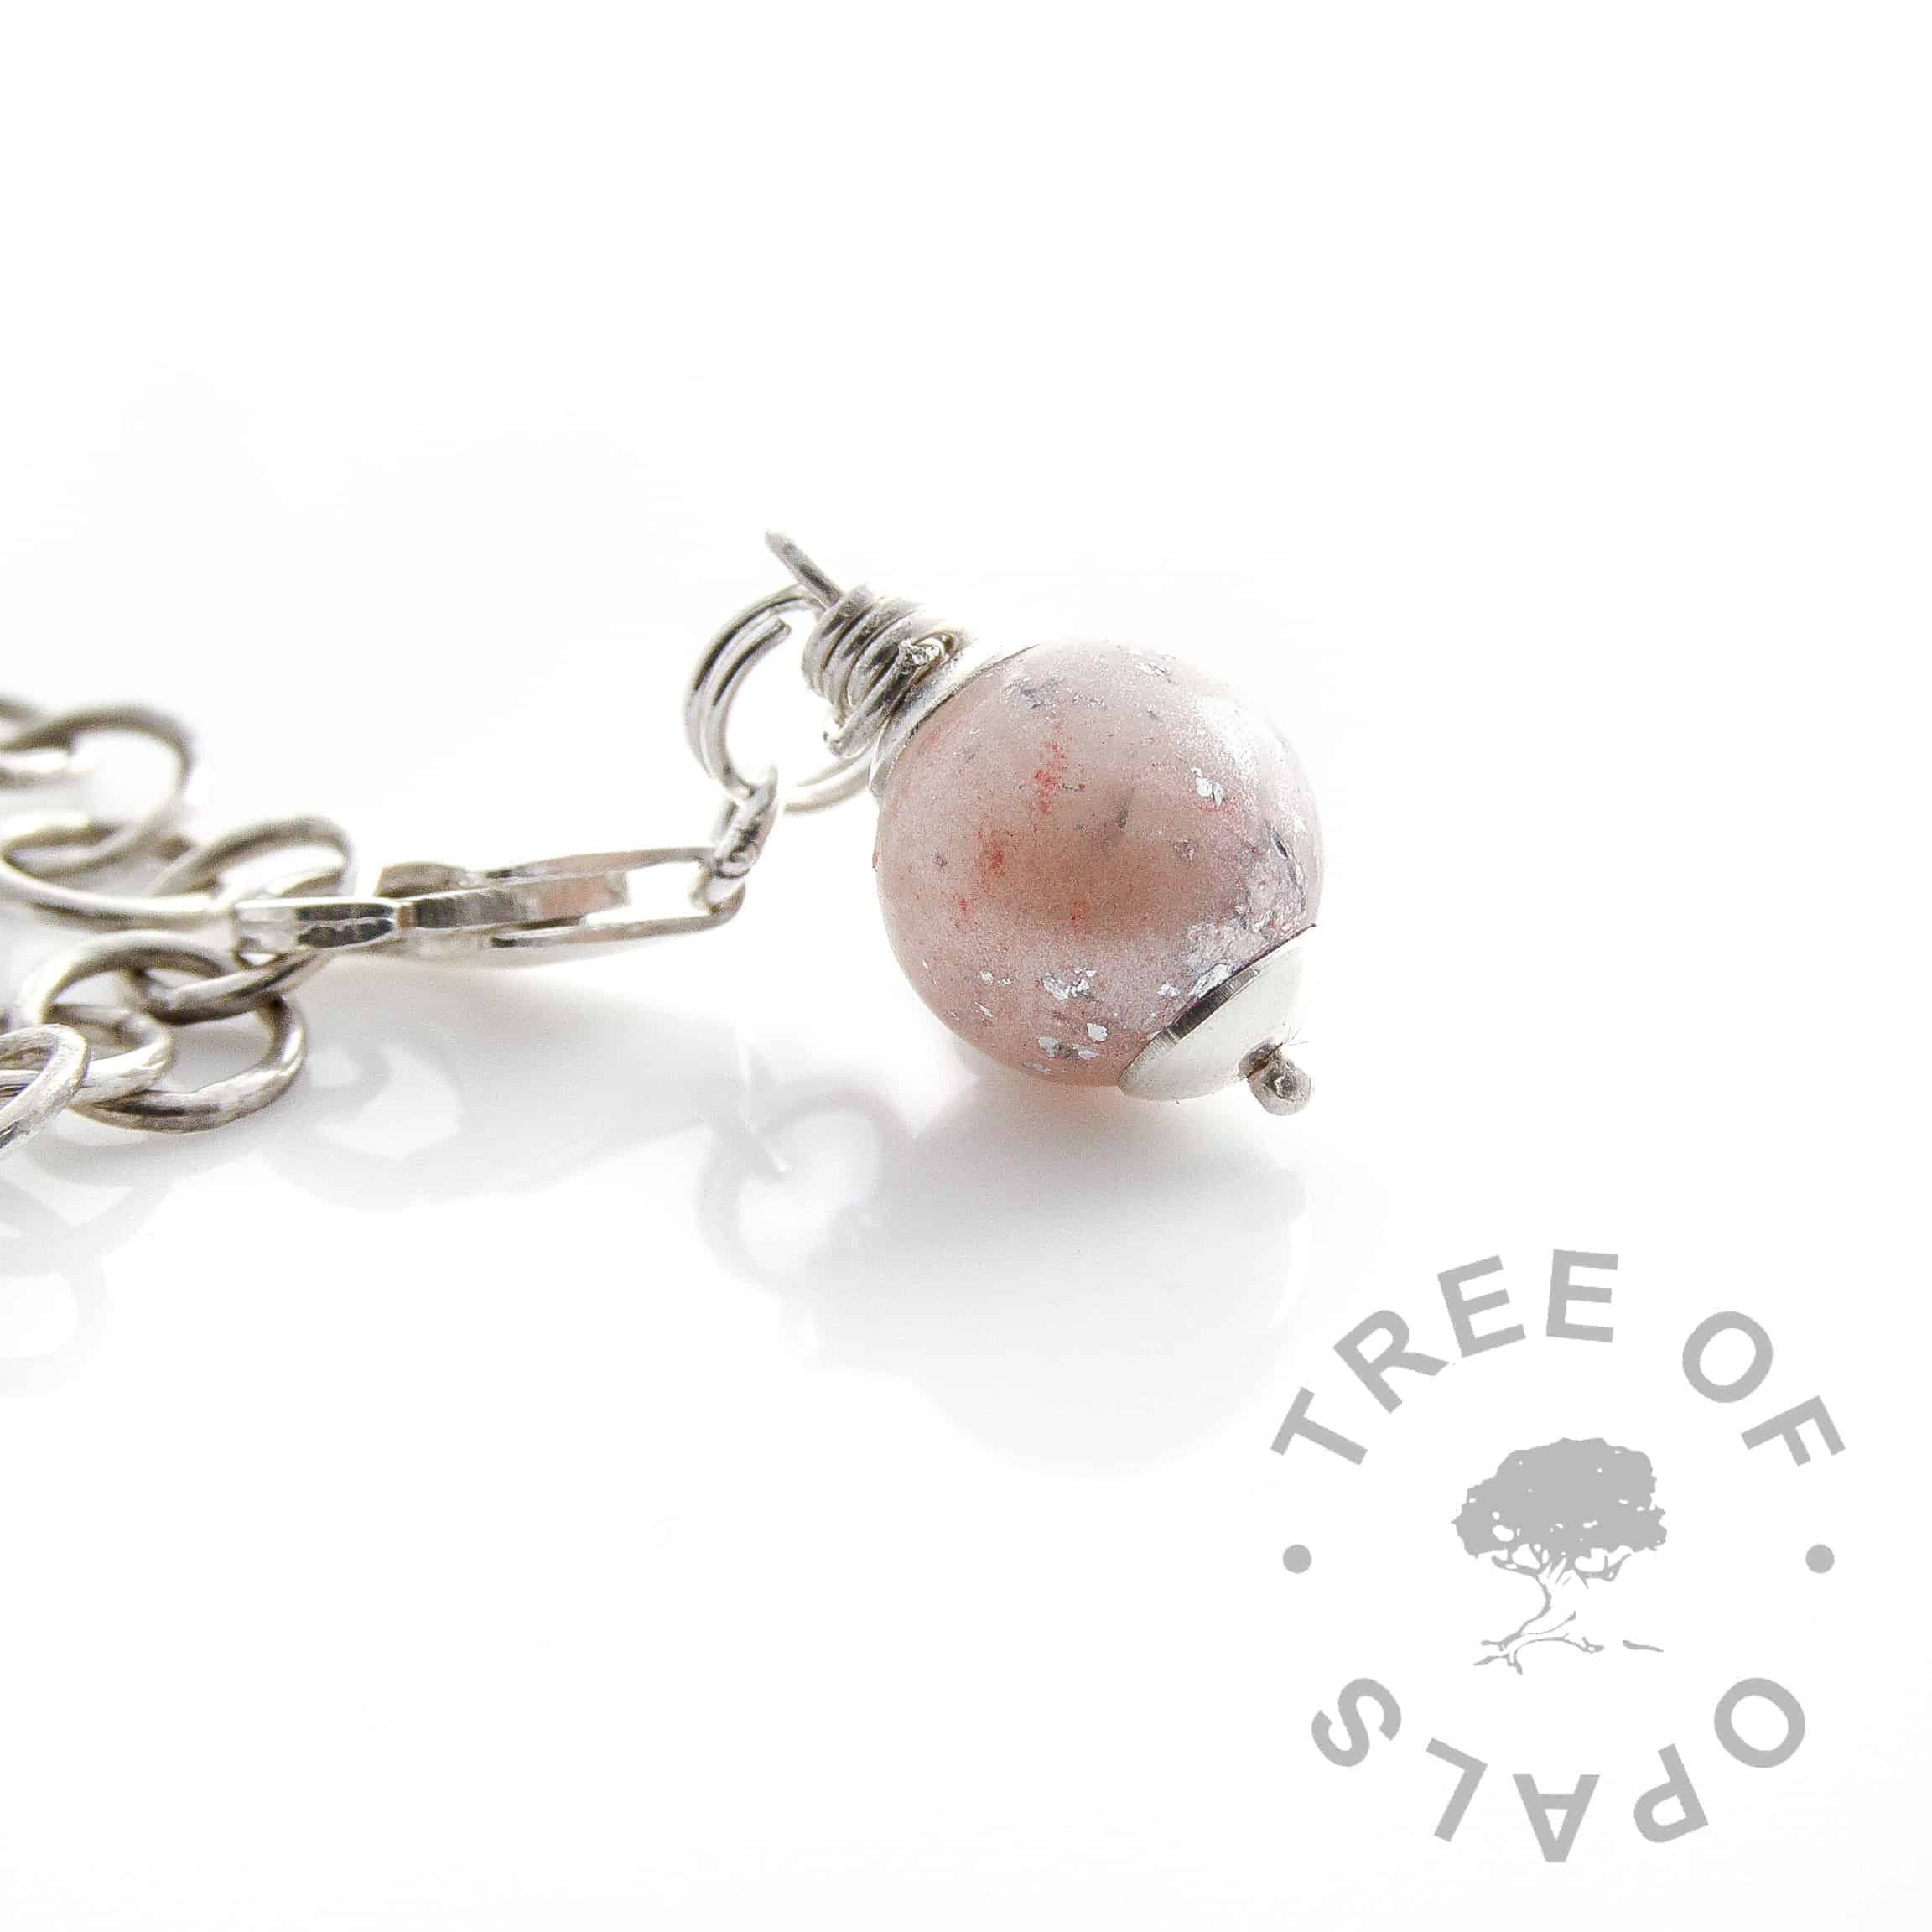 breastmilk pearl dangle charm with punch pink shimmer and subtle silver leaf, hand wire wrapped with a lobster claw attachment. Perfect for Thomas Sabo style bracelets